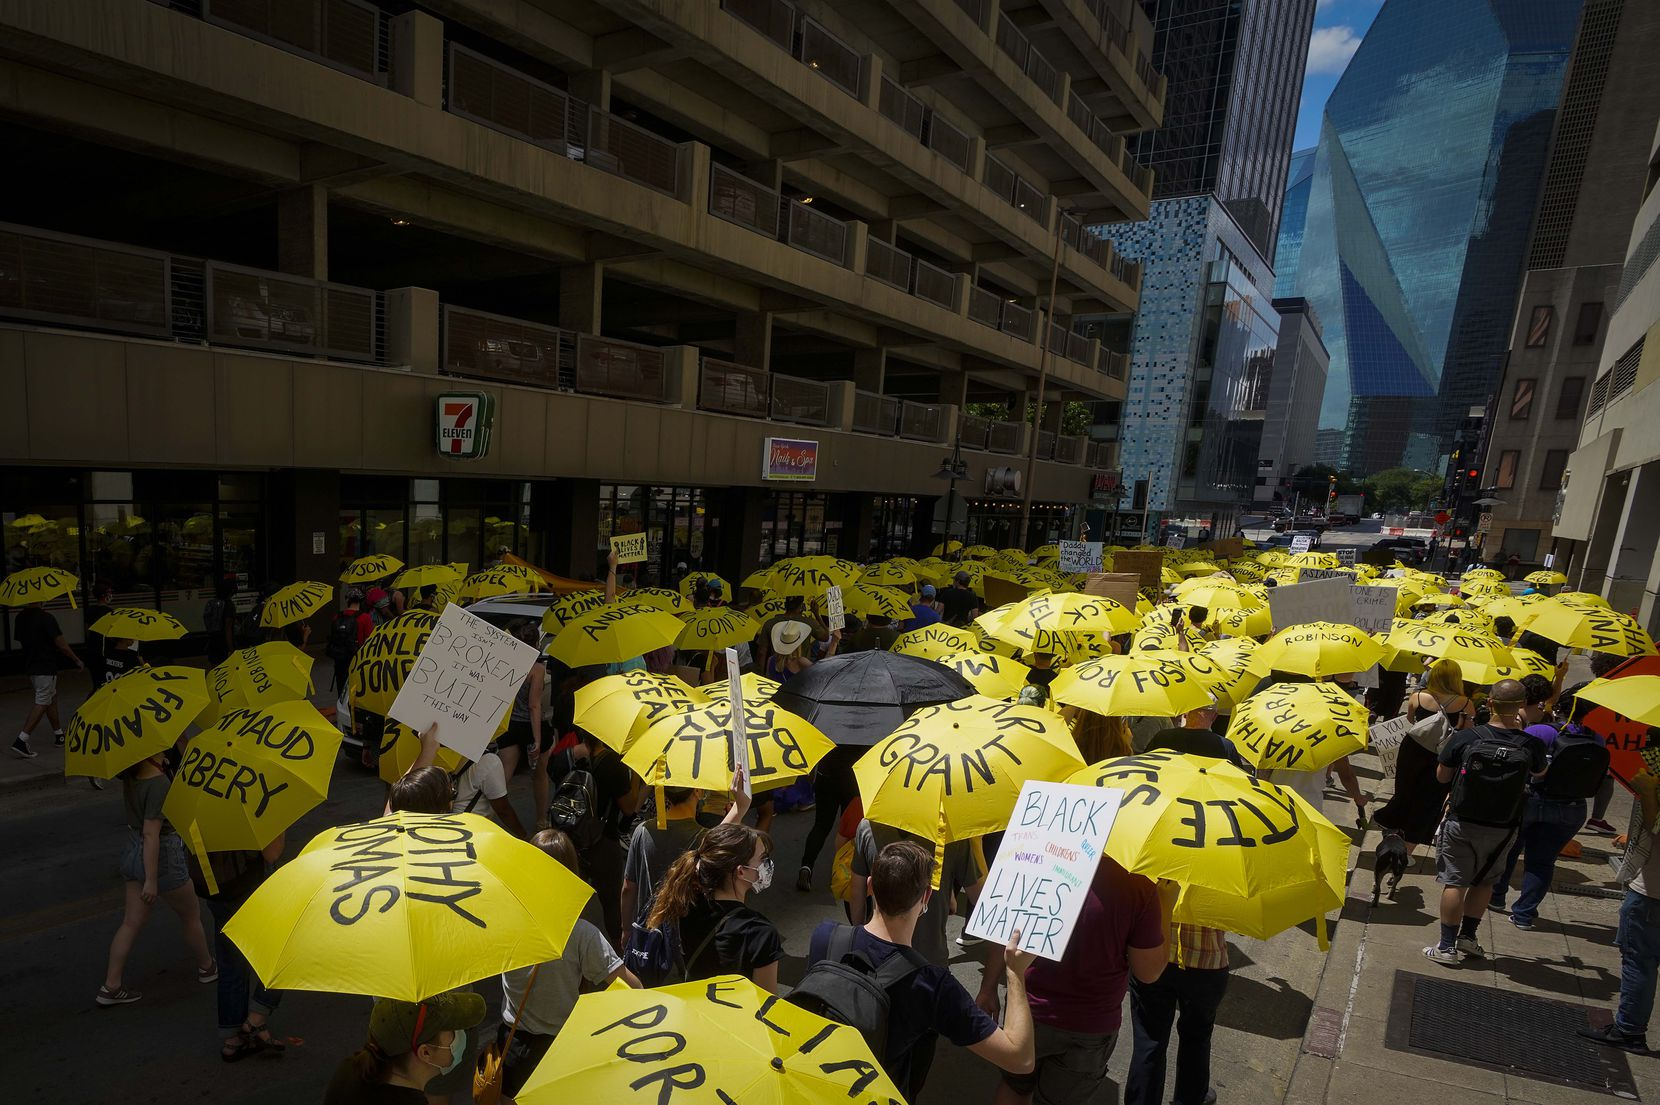 Demonstrators, many carrying umbrellas bearing the names of people who have been killed by police or racial violence, march through the streets of downtown Dallas following a rally commemorating Juneteenth at Dallas City Hall on Friday, June 19, 2020.  (Smiley N. Pool/The Dallas Morning News)